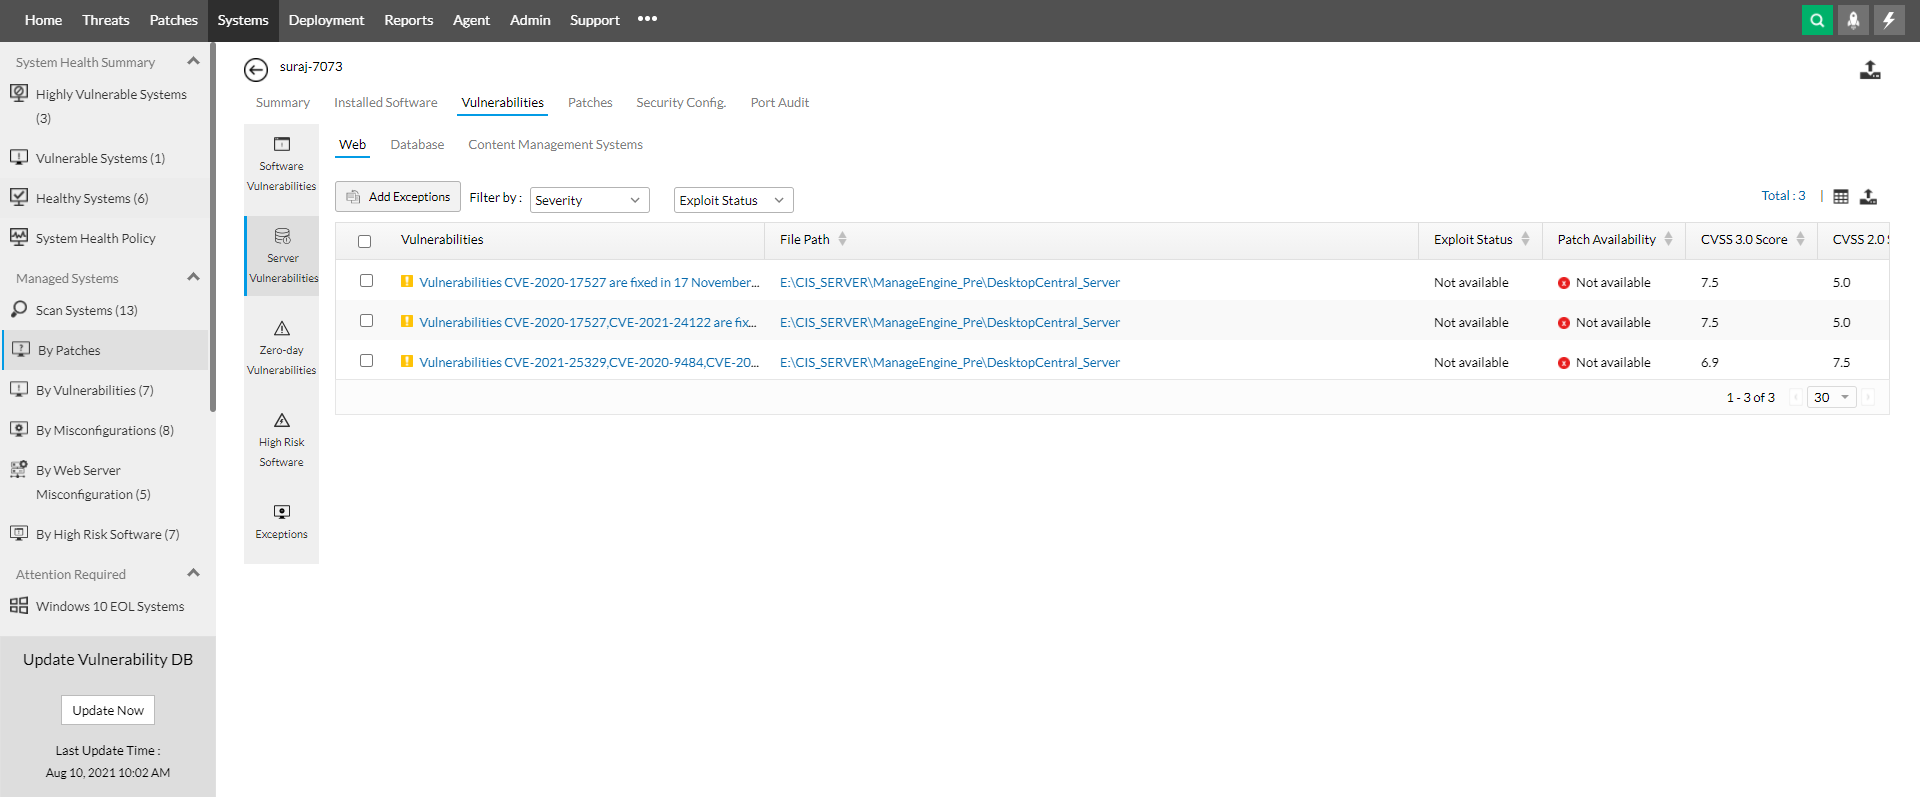 Drilled-down view of assets in ManageEngine's vulnerability assessment tool